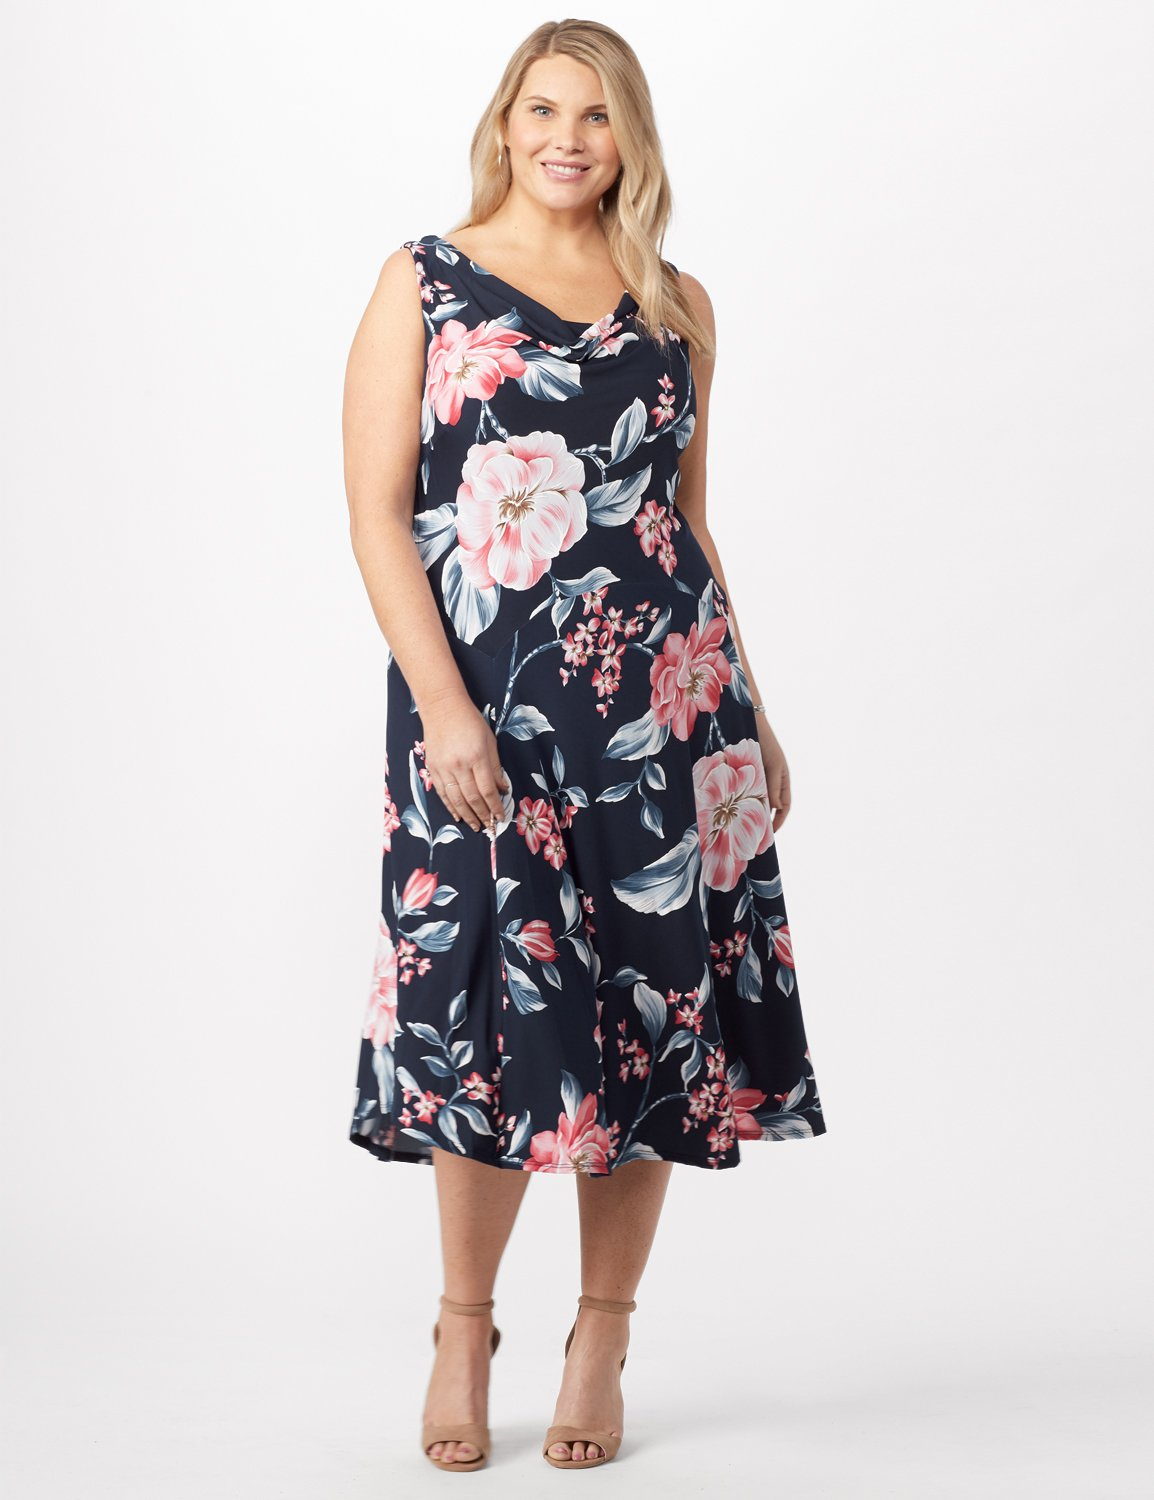 Floral Dress with Crochet Sweater Plus - Navy/pink - Detail